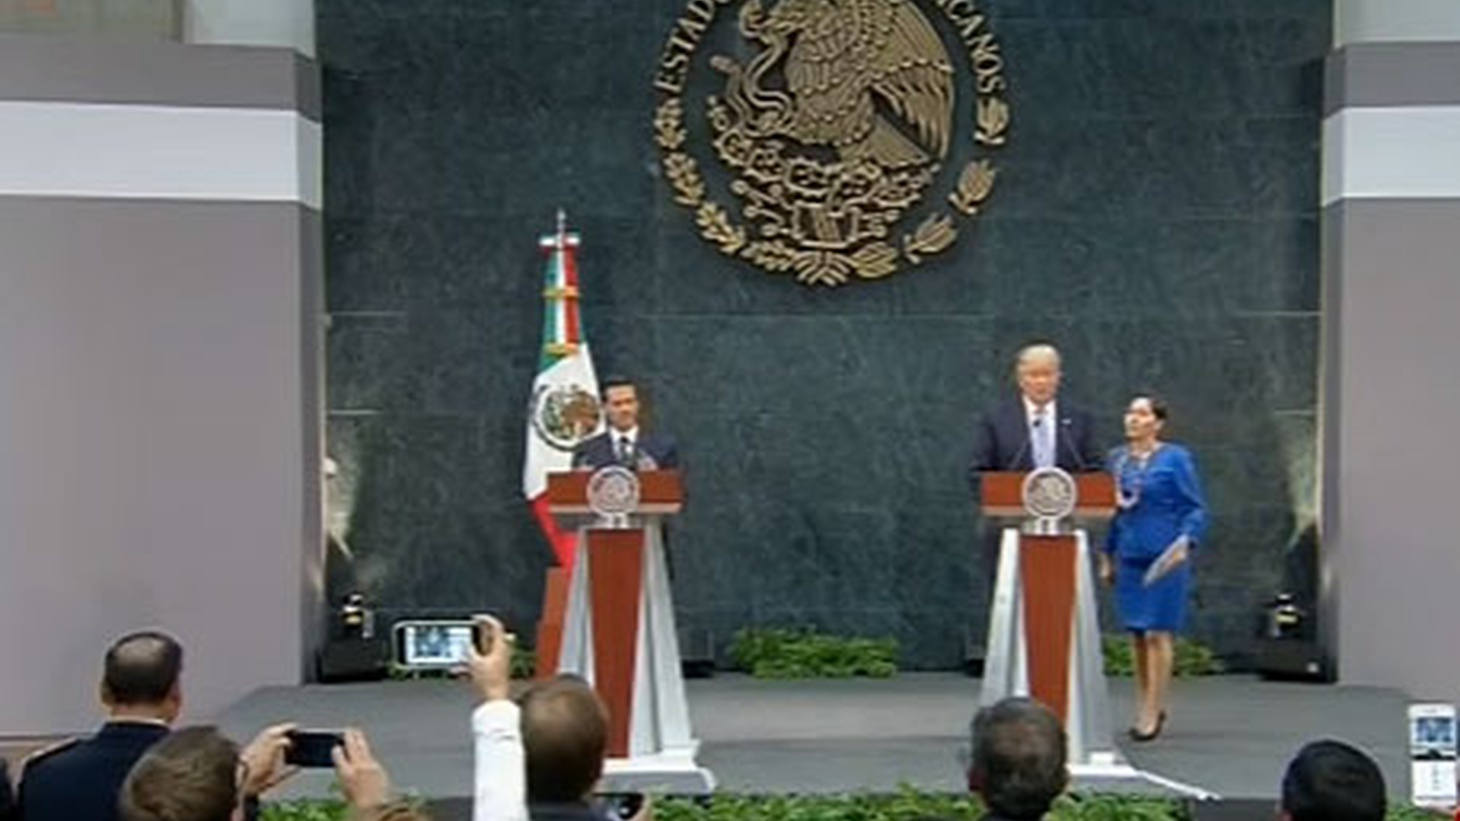 """Donald Trump performed a political pivot yesterday afternoon in Mexico — away from the familiar populist rhetoric of his campaign. After meeting with President Enrique Peña Nieto, he sounded more like a diplomat. """"I was straight forward in presenting my views on the impacts of current trade and immigration policies on the United States."""""""